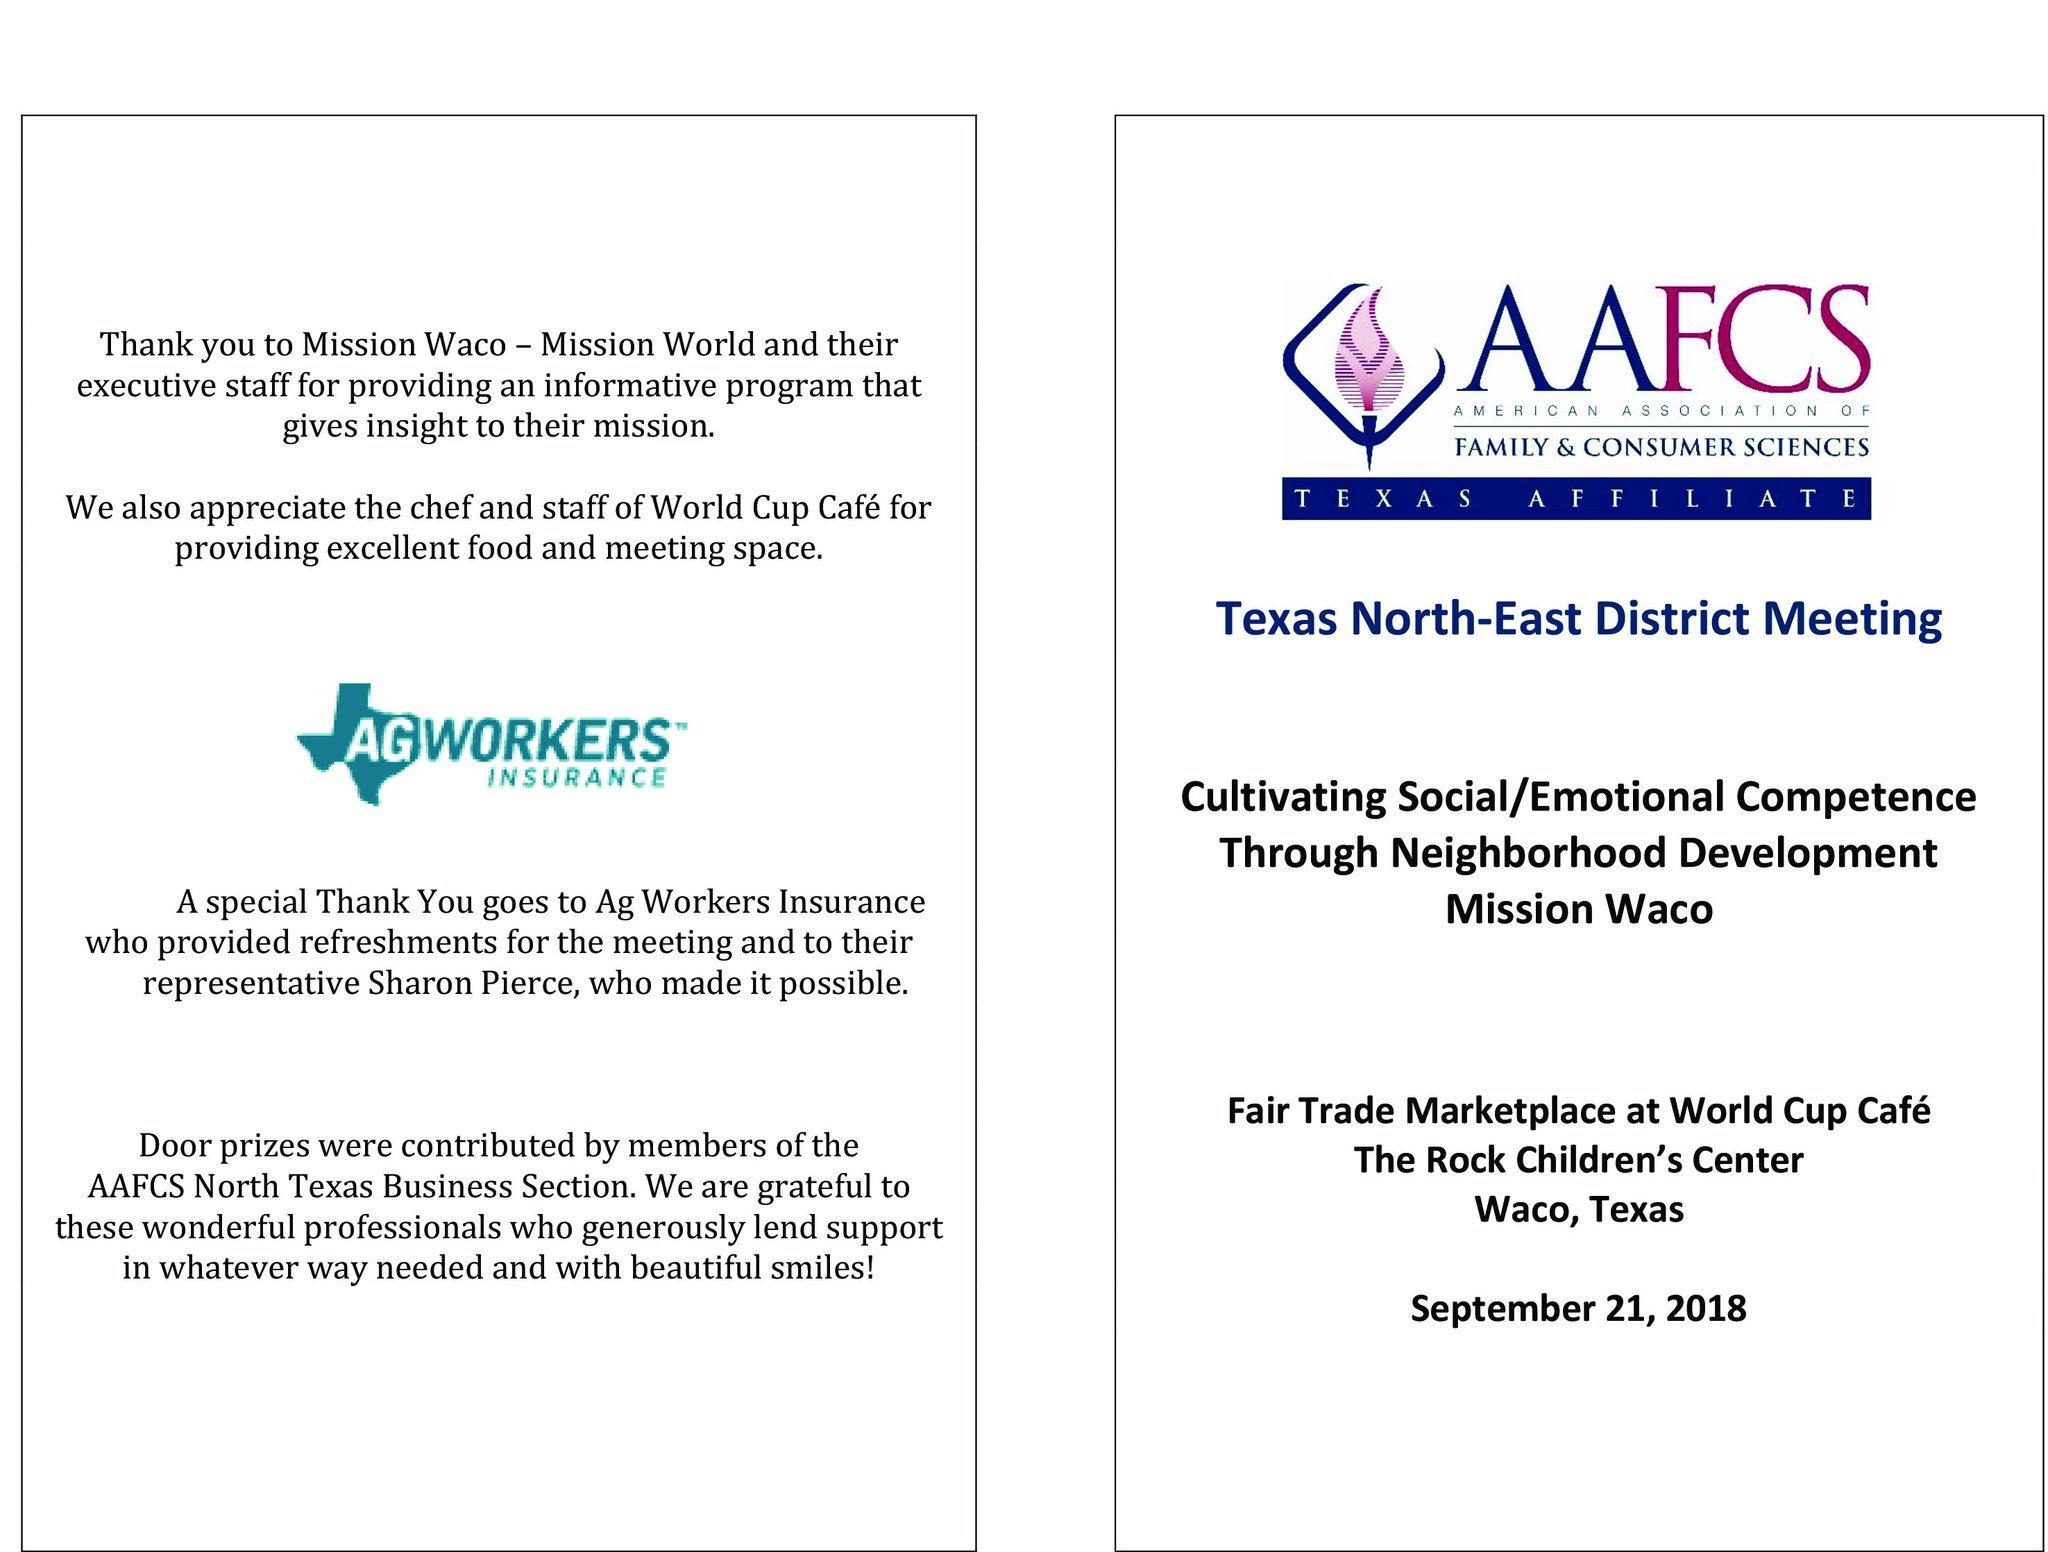 Ag Workers Mutual On Twitter Excited To See Everyone Tomorrow At The Aafcstx Texas North East District Meeting